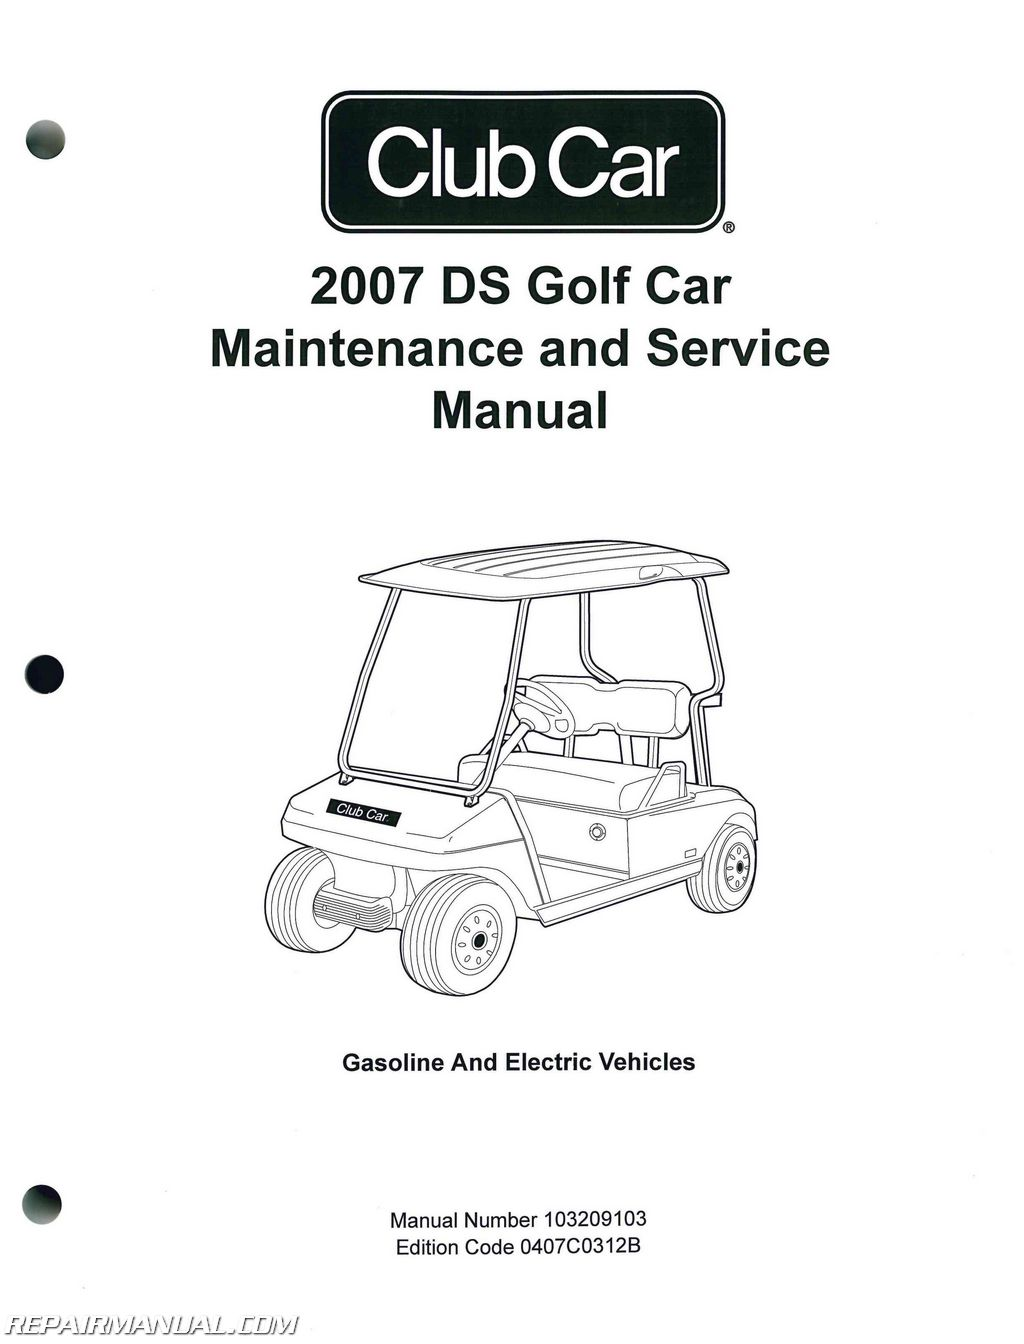 1994 36v club car wiring diagram atwood hot water heater 2007 ds golf gas and electric cart